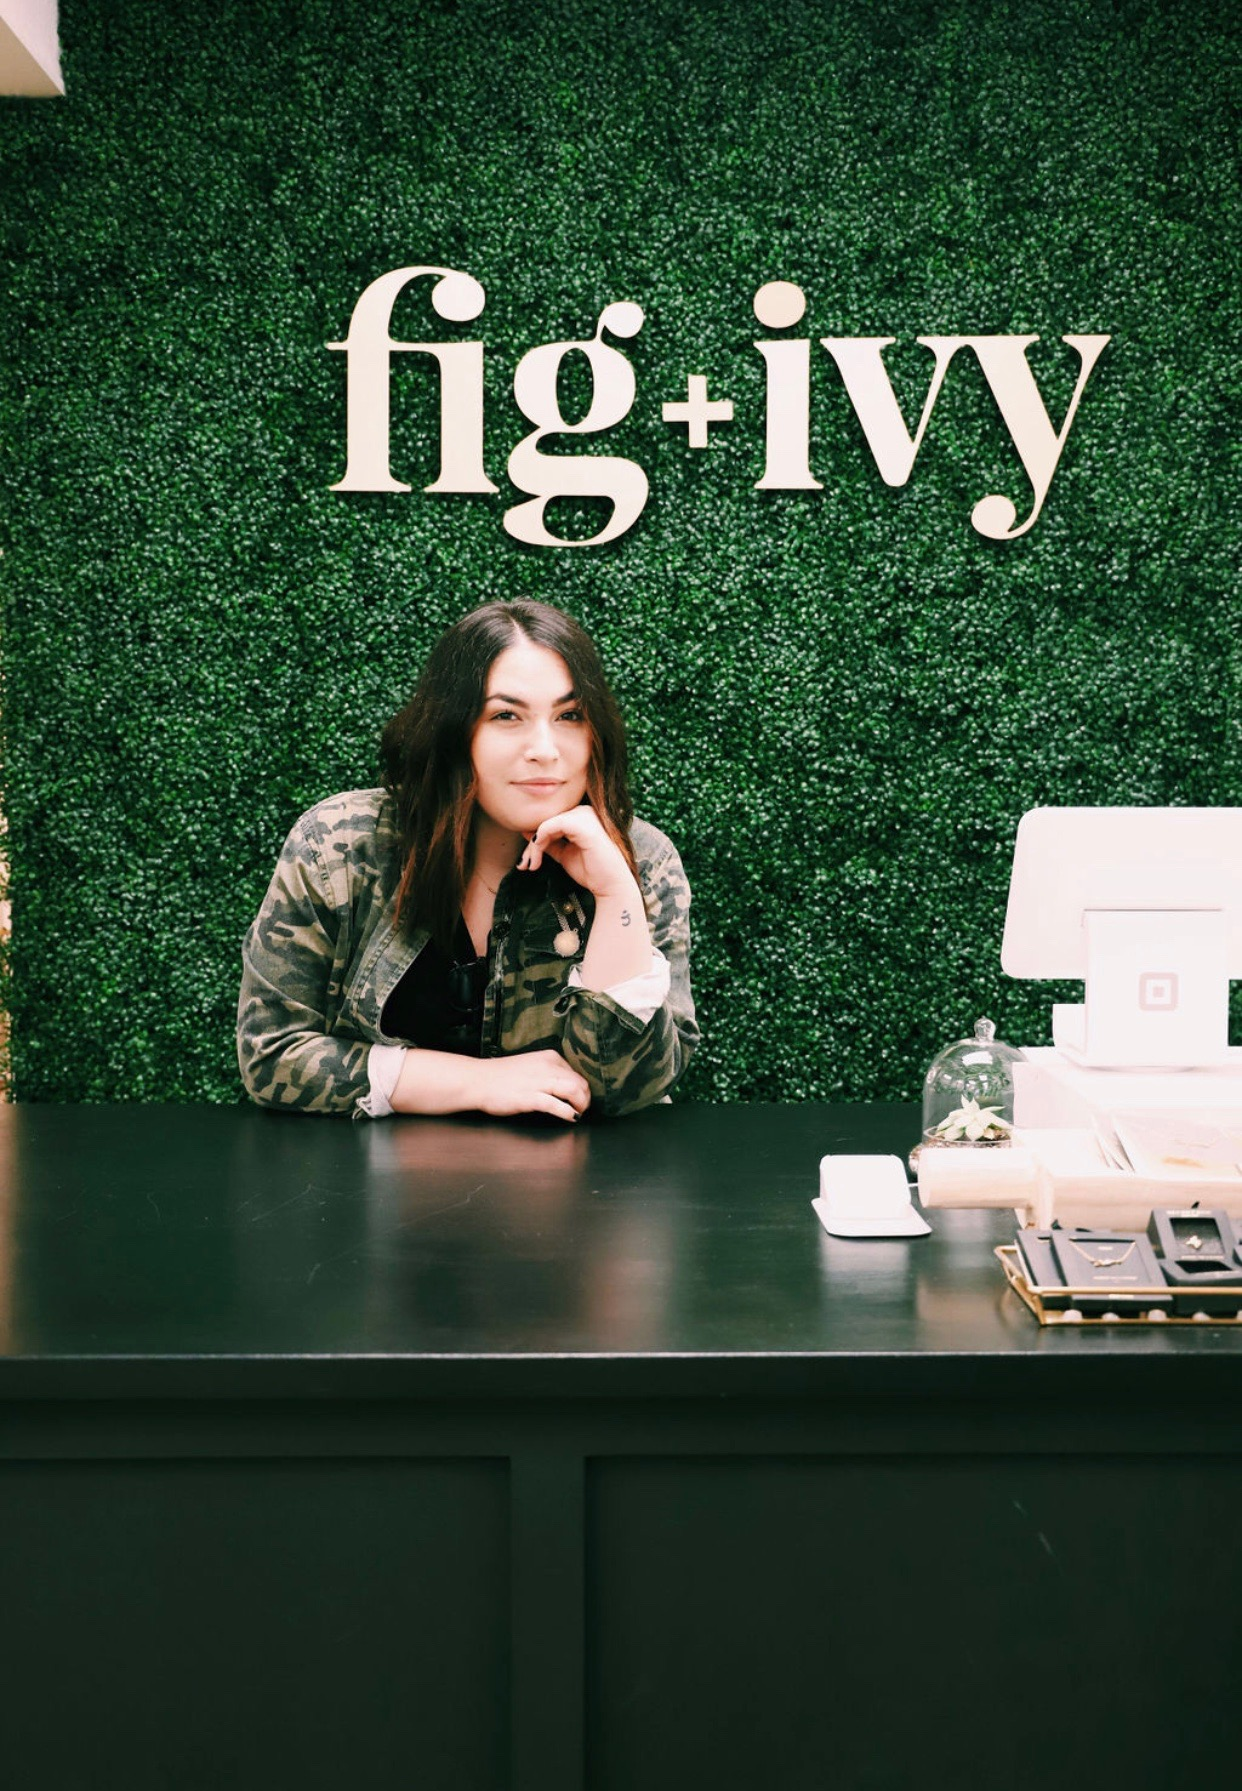 Talia, head stylist at Fig + Ivy Collective in Roseville, California. Visit this shop to learn more about their mission towards size-inclusivity and empowering women in self-love and confidence!